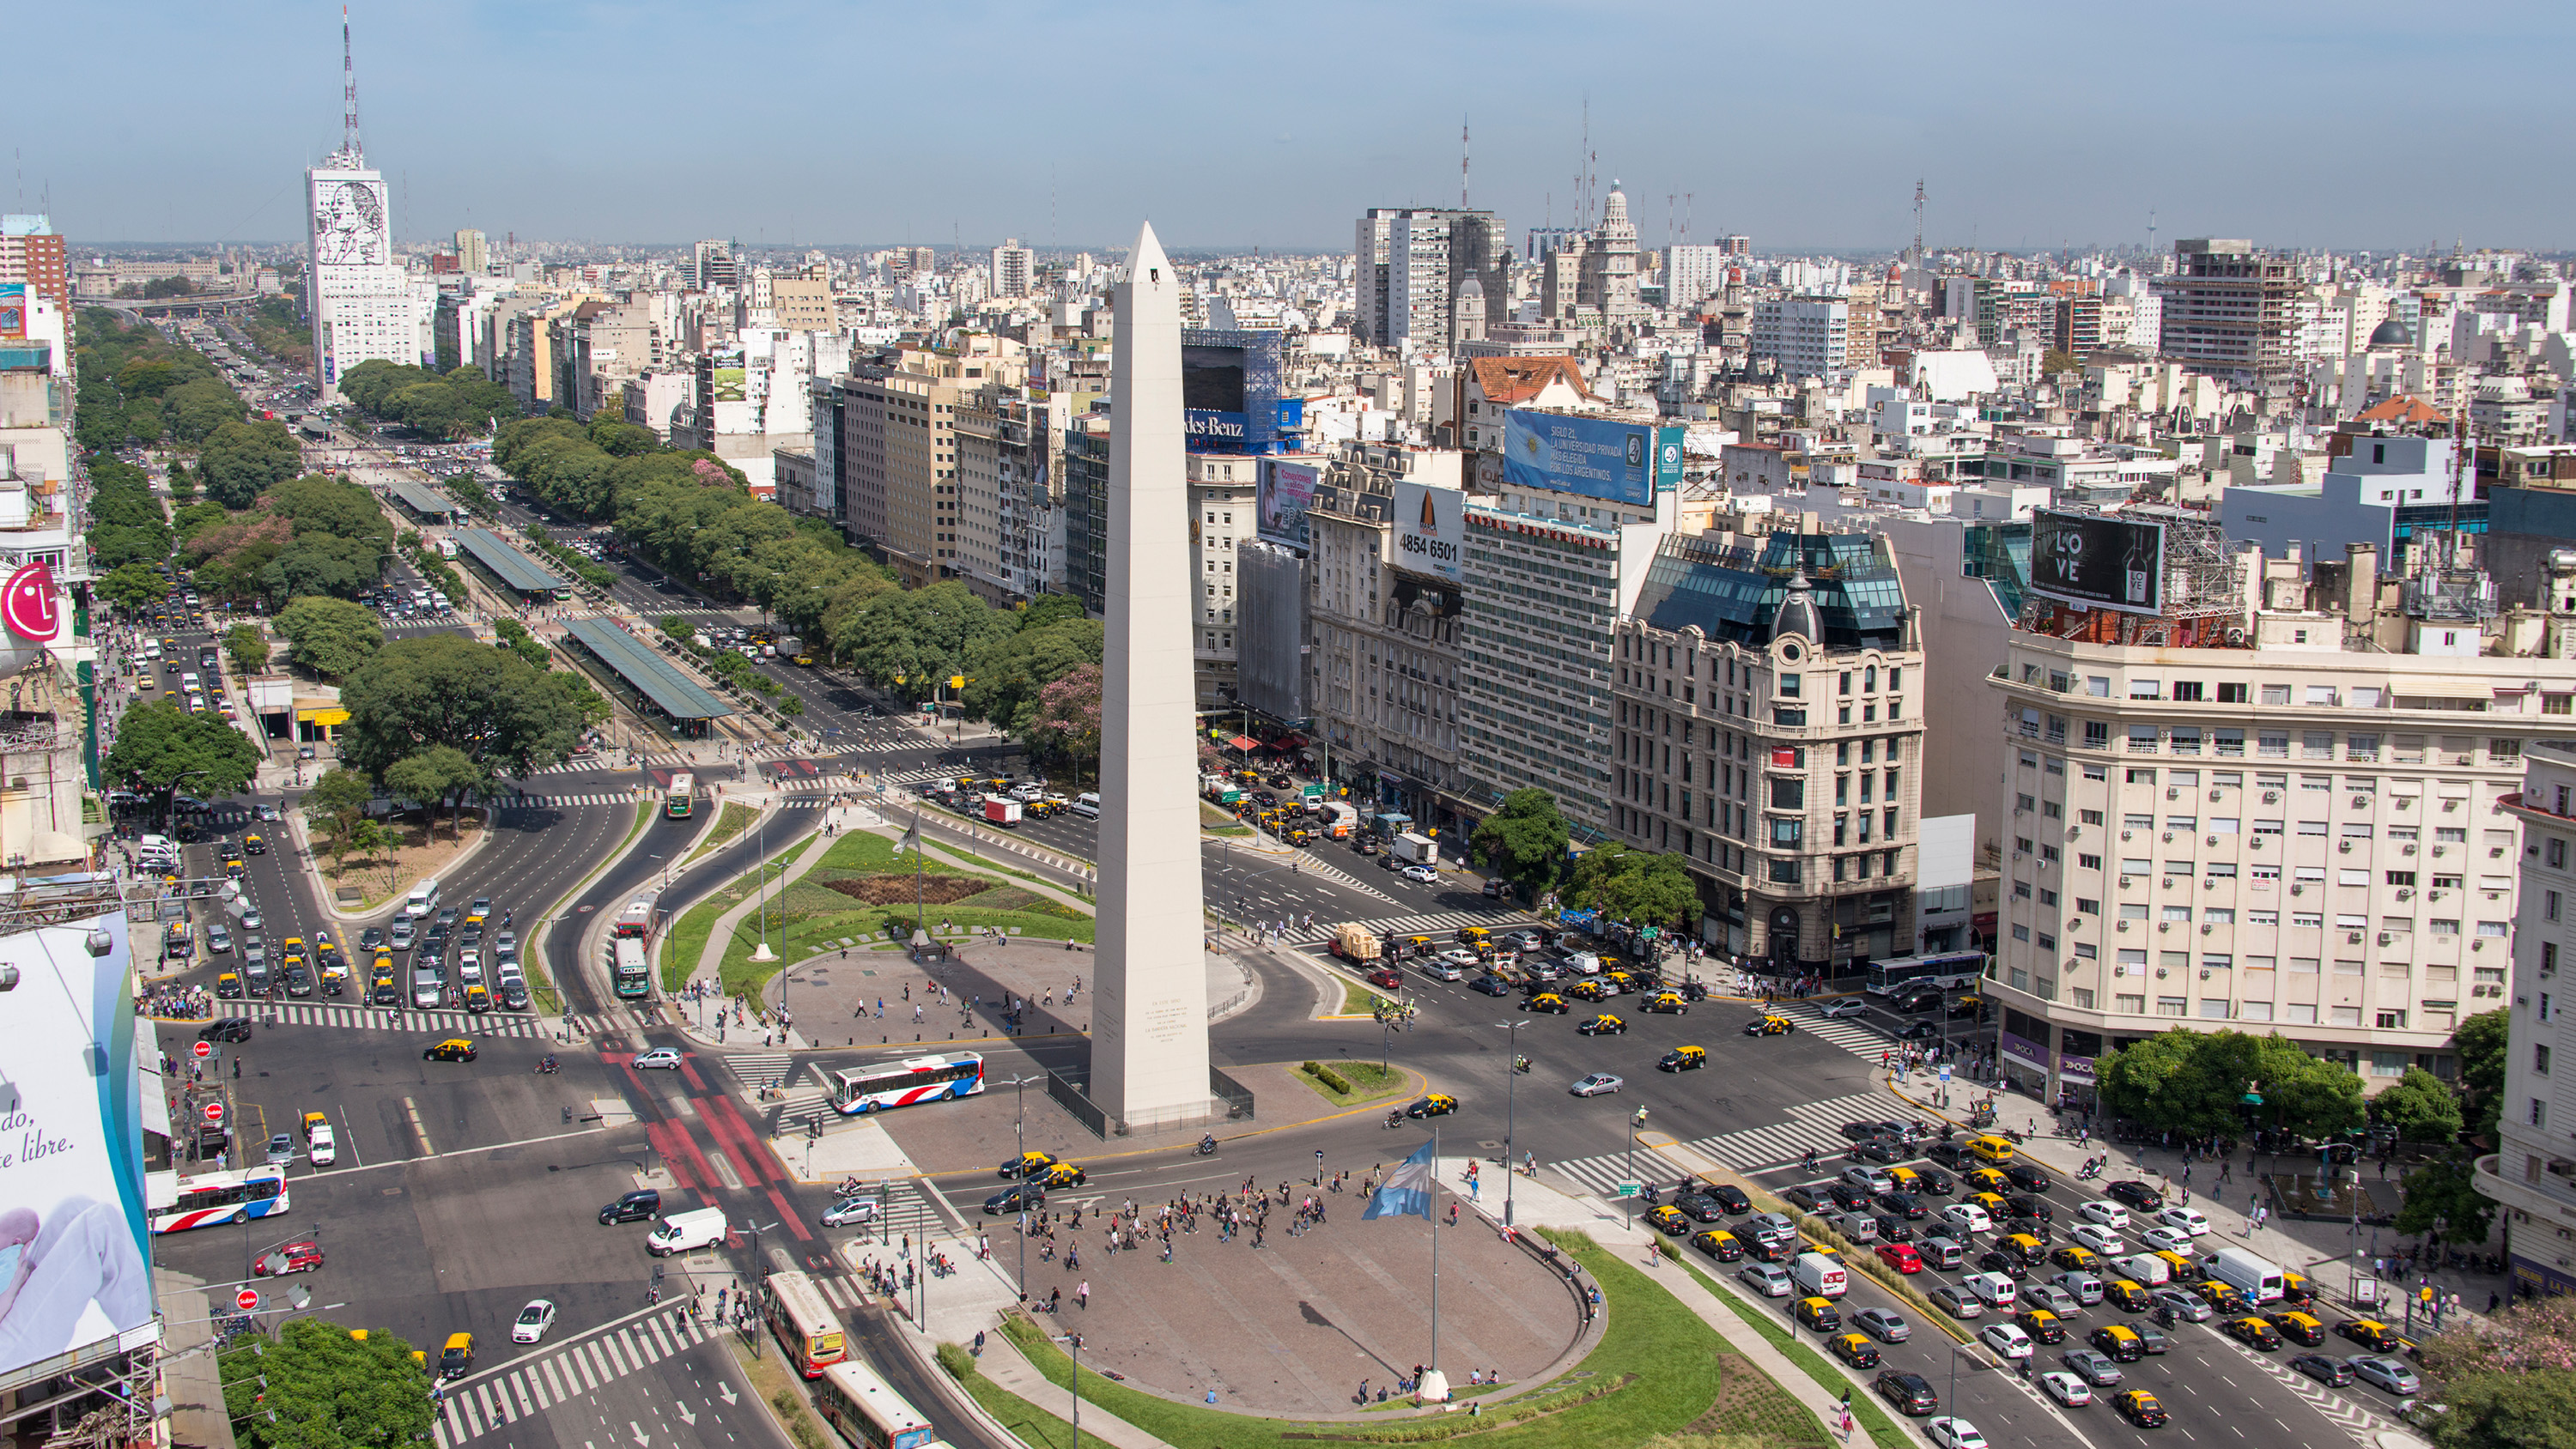 Panoramic view of Avenida in Buenos Aires